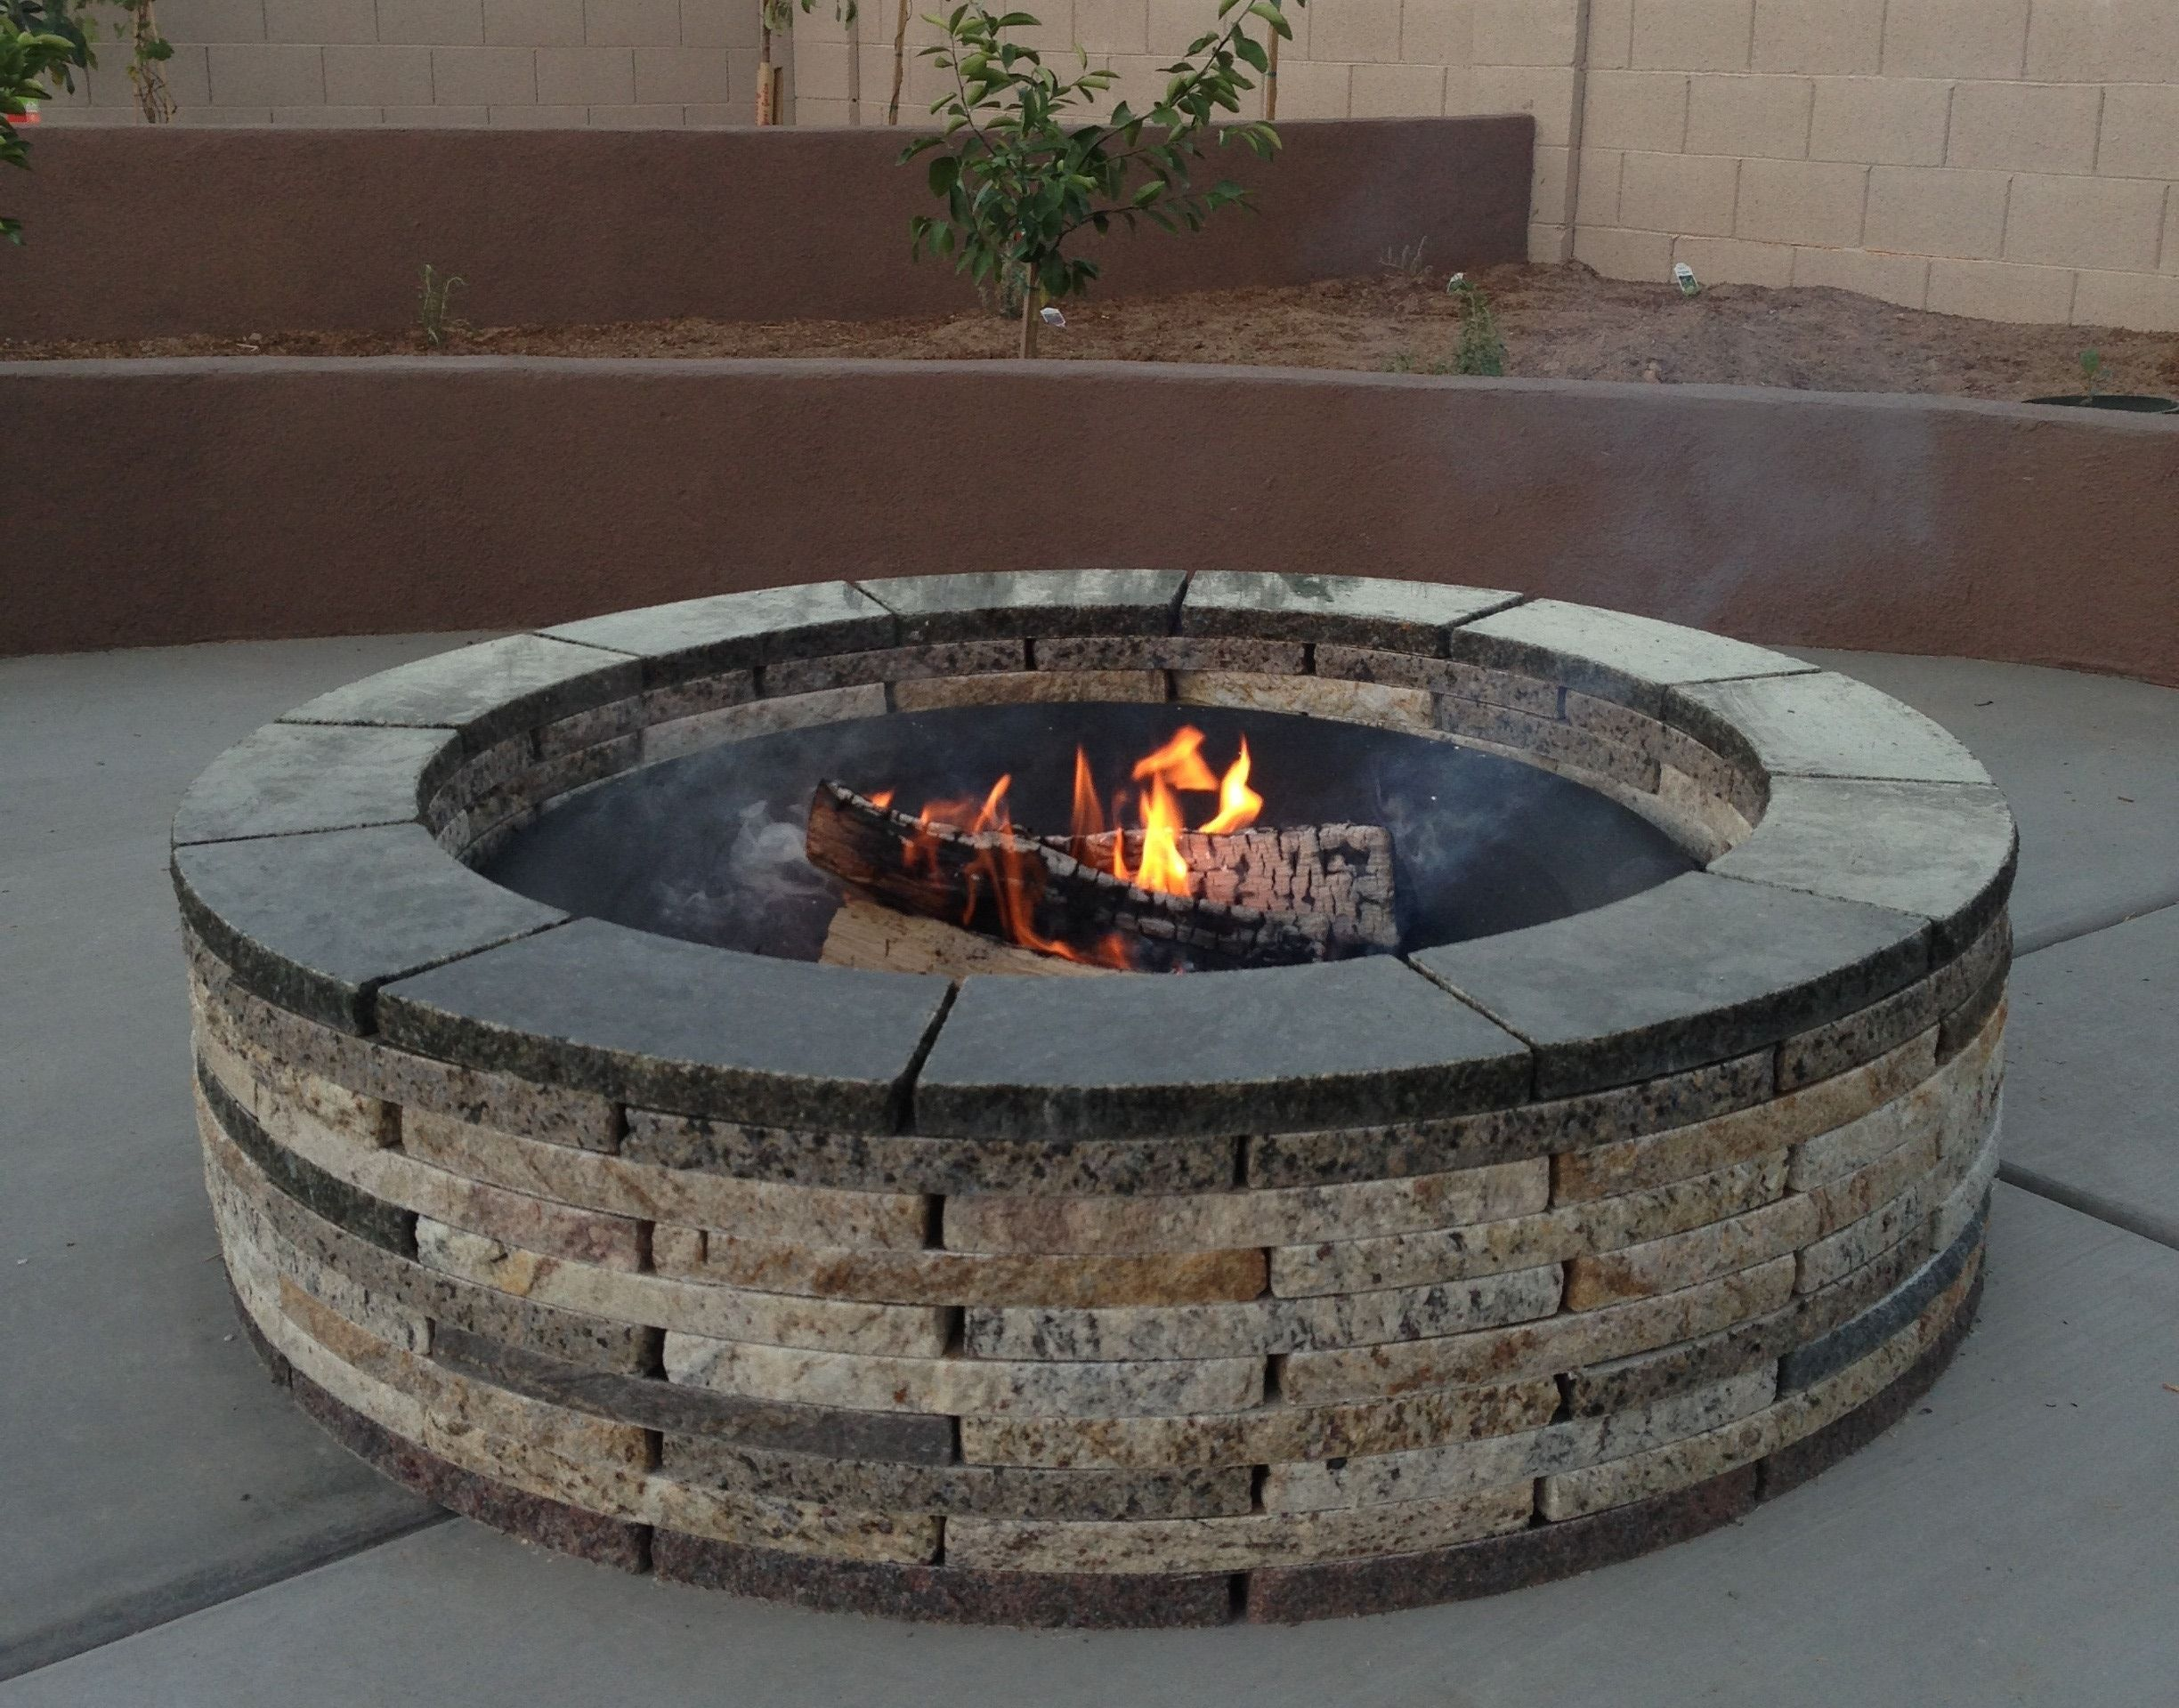 48 Inch Granite Fire Pit By Www Foreverstone Biz It S An Easy Diy Afternoon Project All Materials Are 100 R Feuerring Feuerstelle Garten Beton Feuerstellen